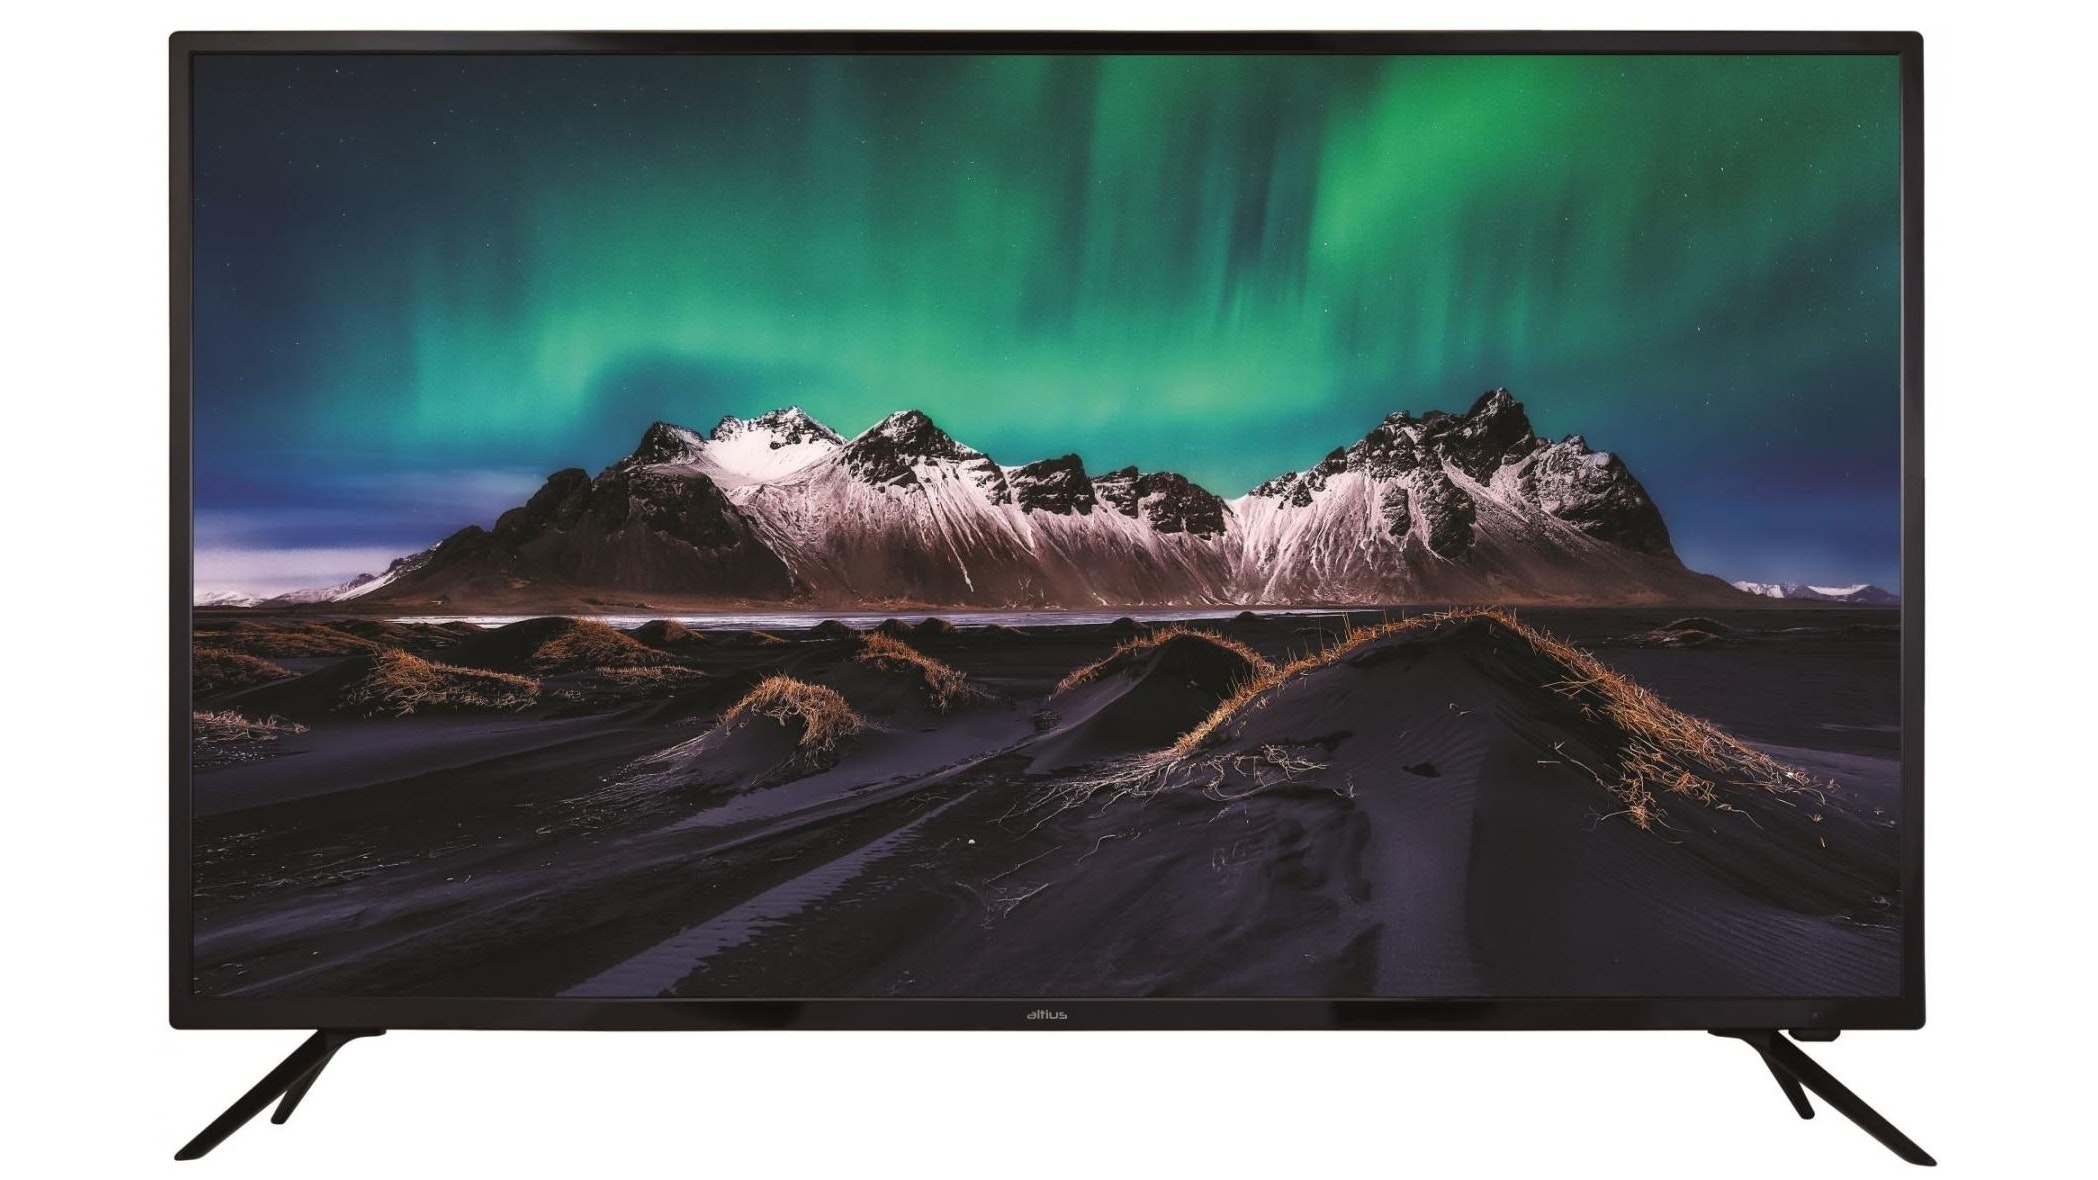 Tv Smart Tv Plasma Lcd Lg Panasonic Samsung Sony Domayne # Table Tv Lcd En Palette